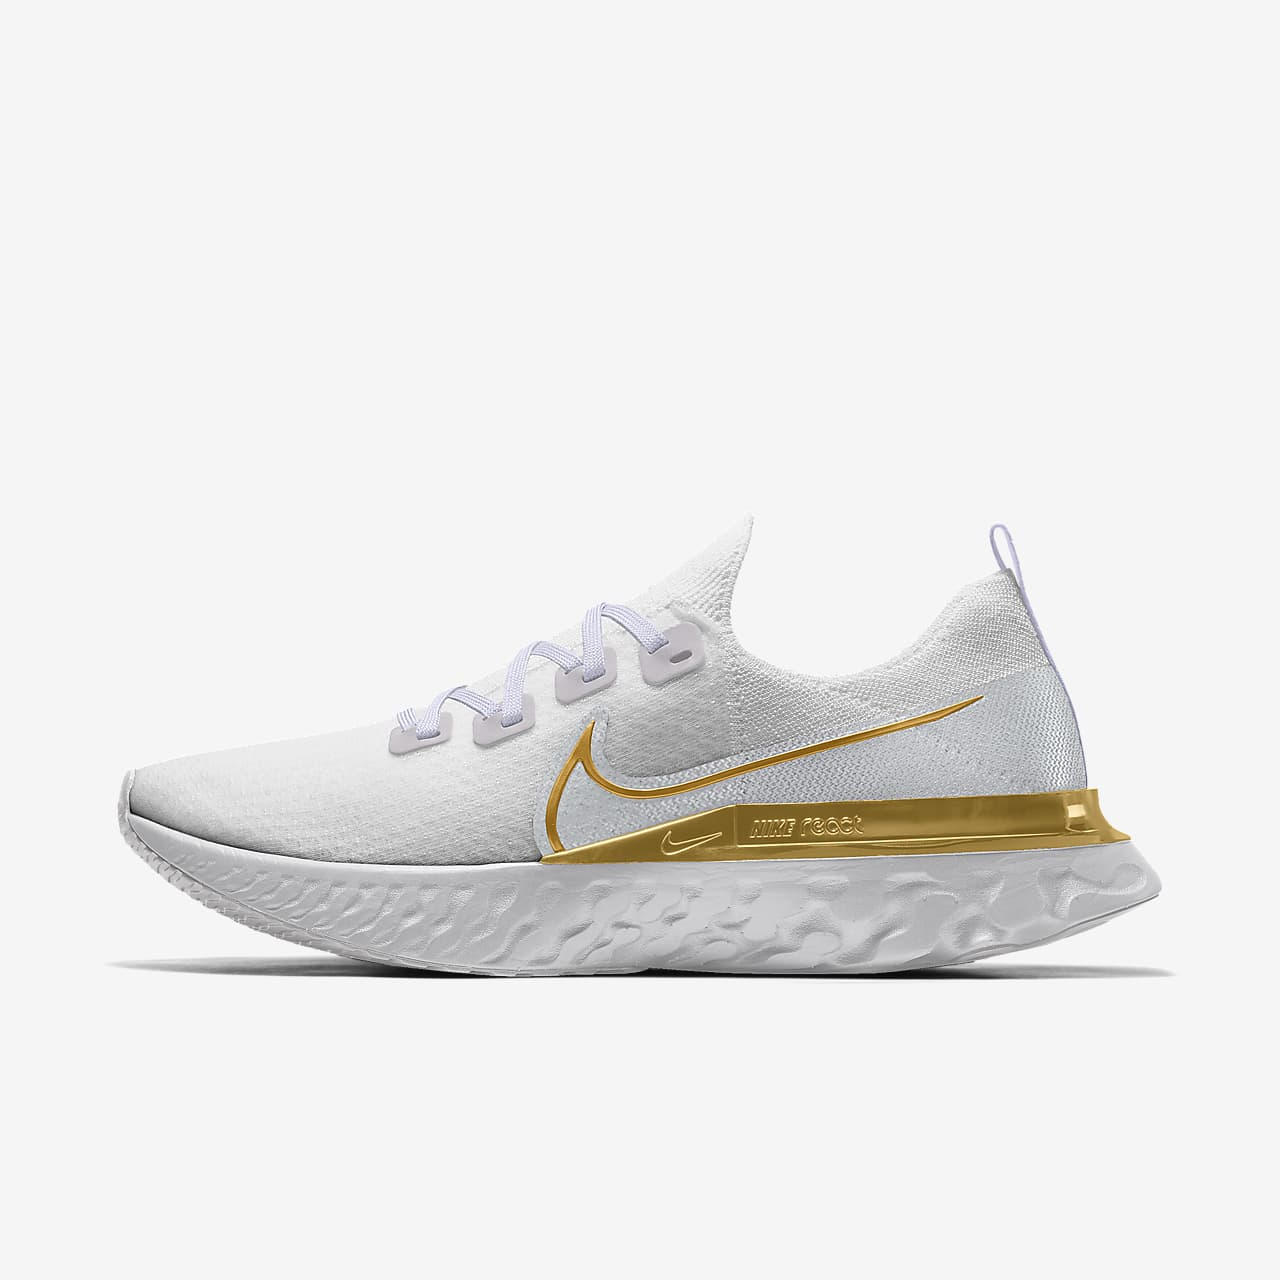 Nike React Infinity Run Flyknit By You 专属定制女子跑步鞋